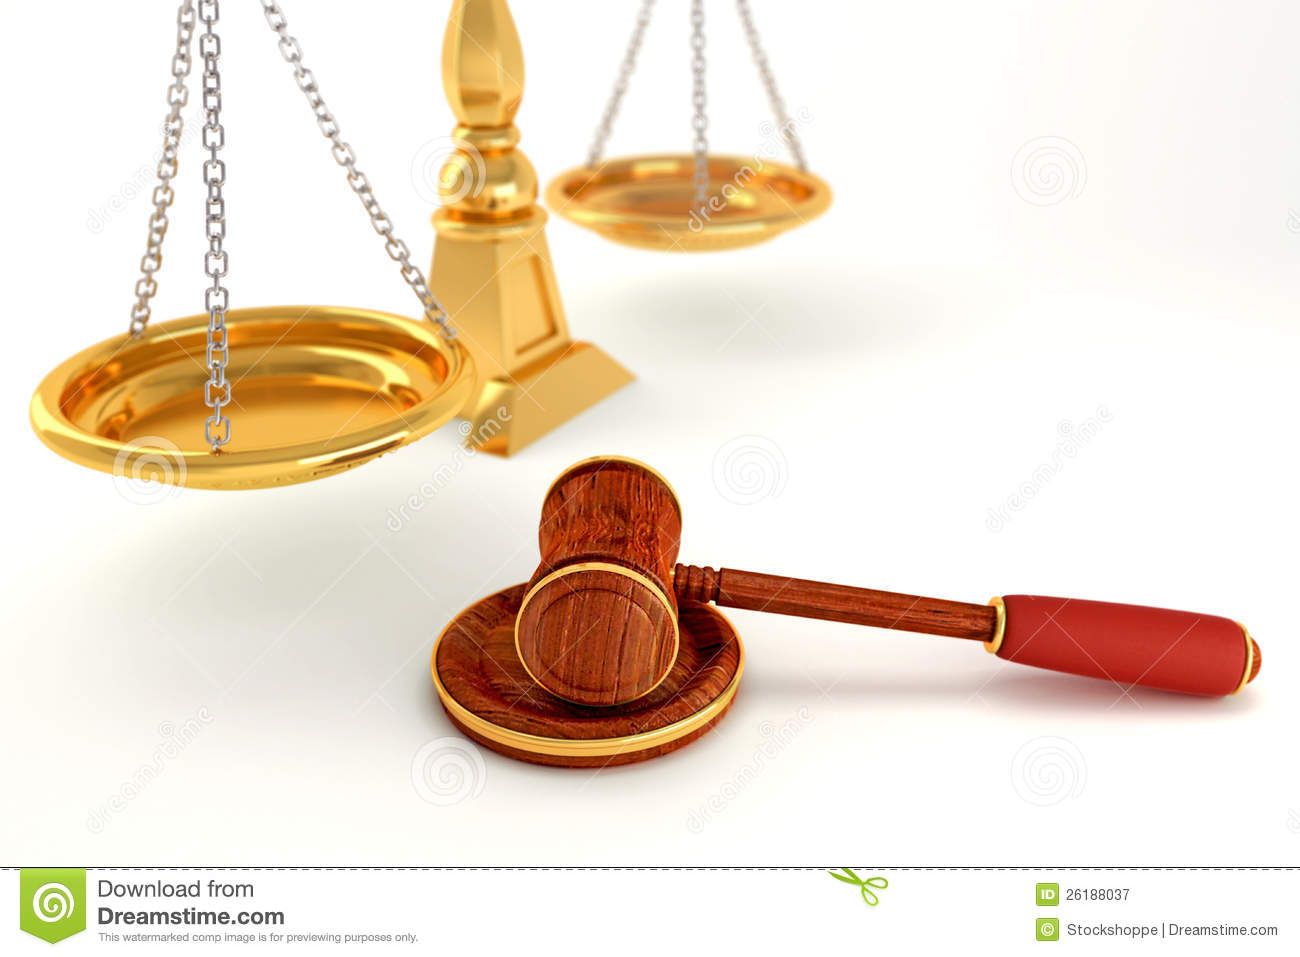 law scale and gavel - photo #29